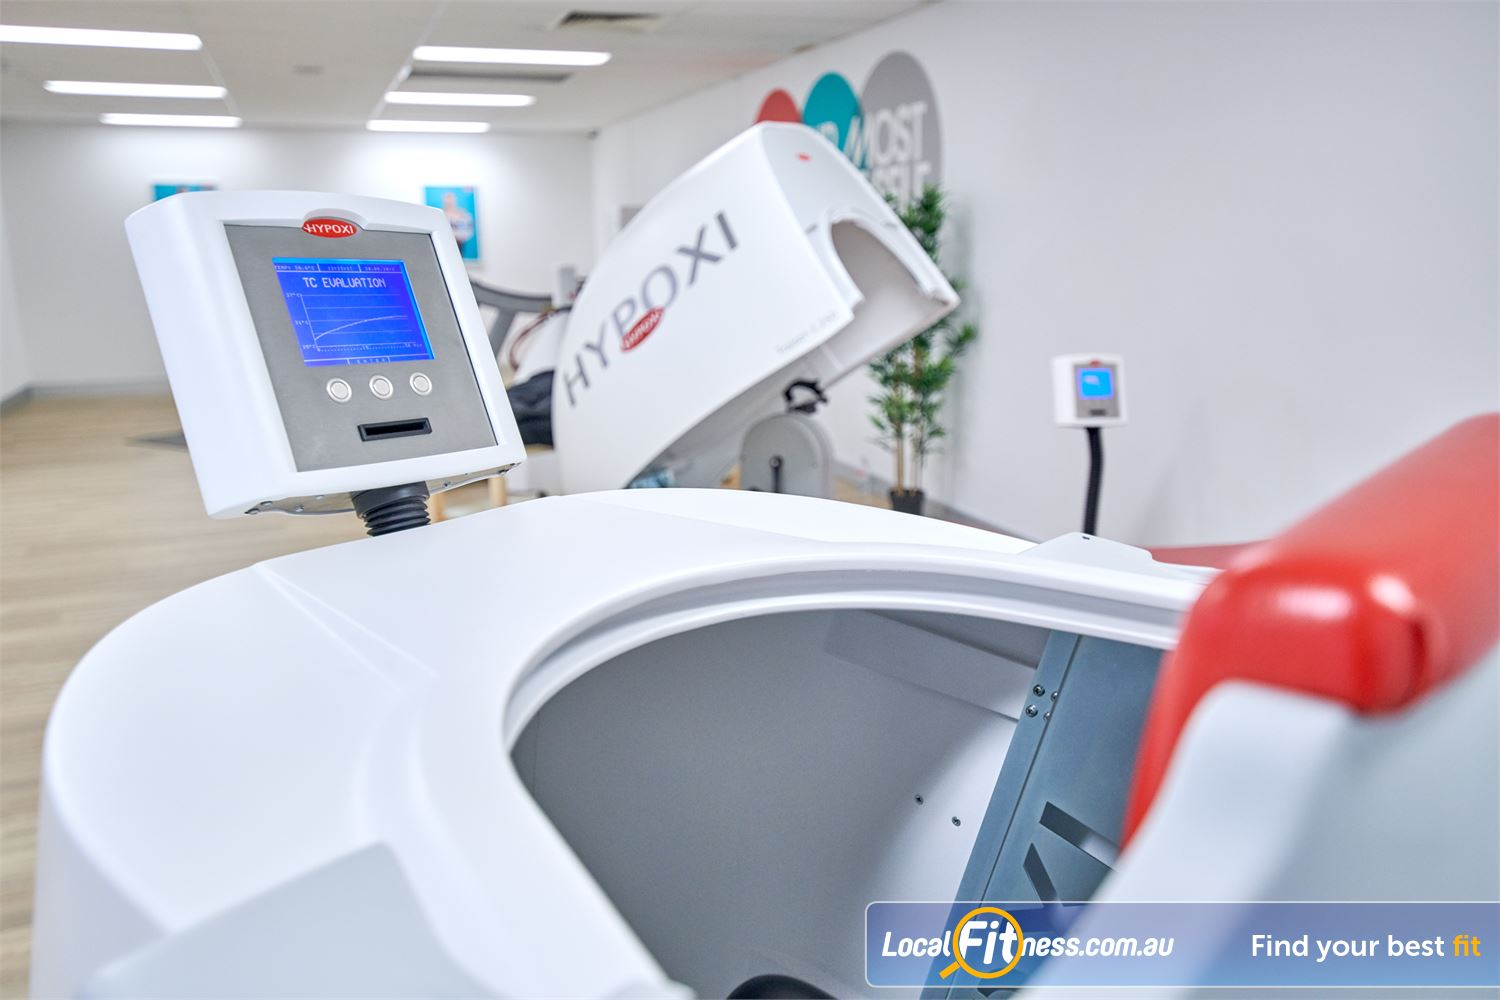 HYPOXI Weight Loss Camberwell Our state of the art HYPOXI machines will monitor your fat-loss progress.